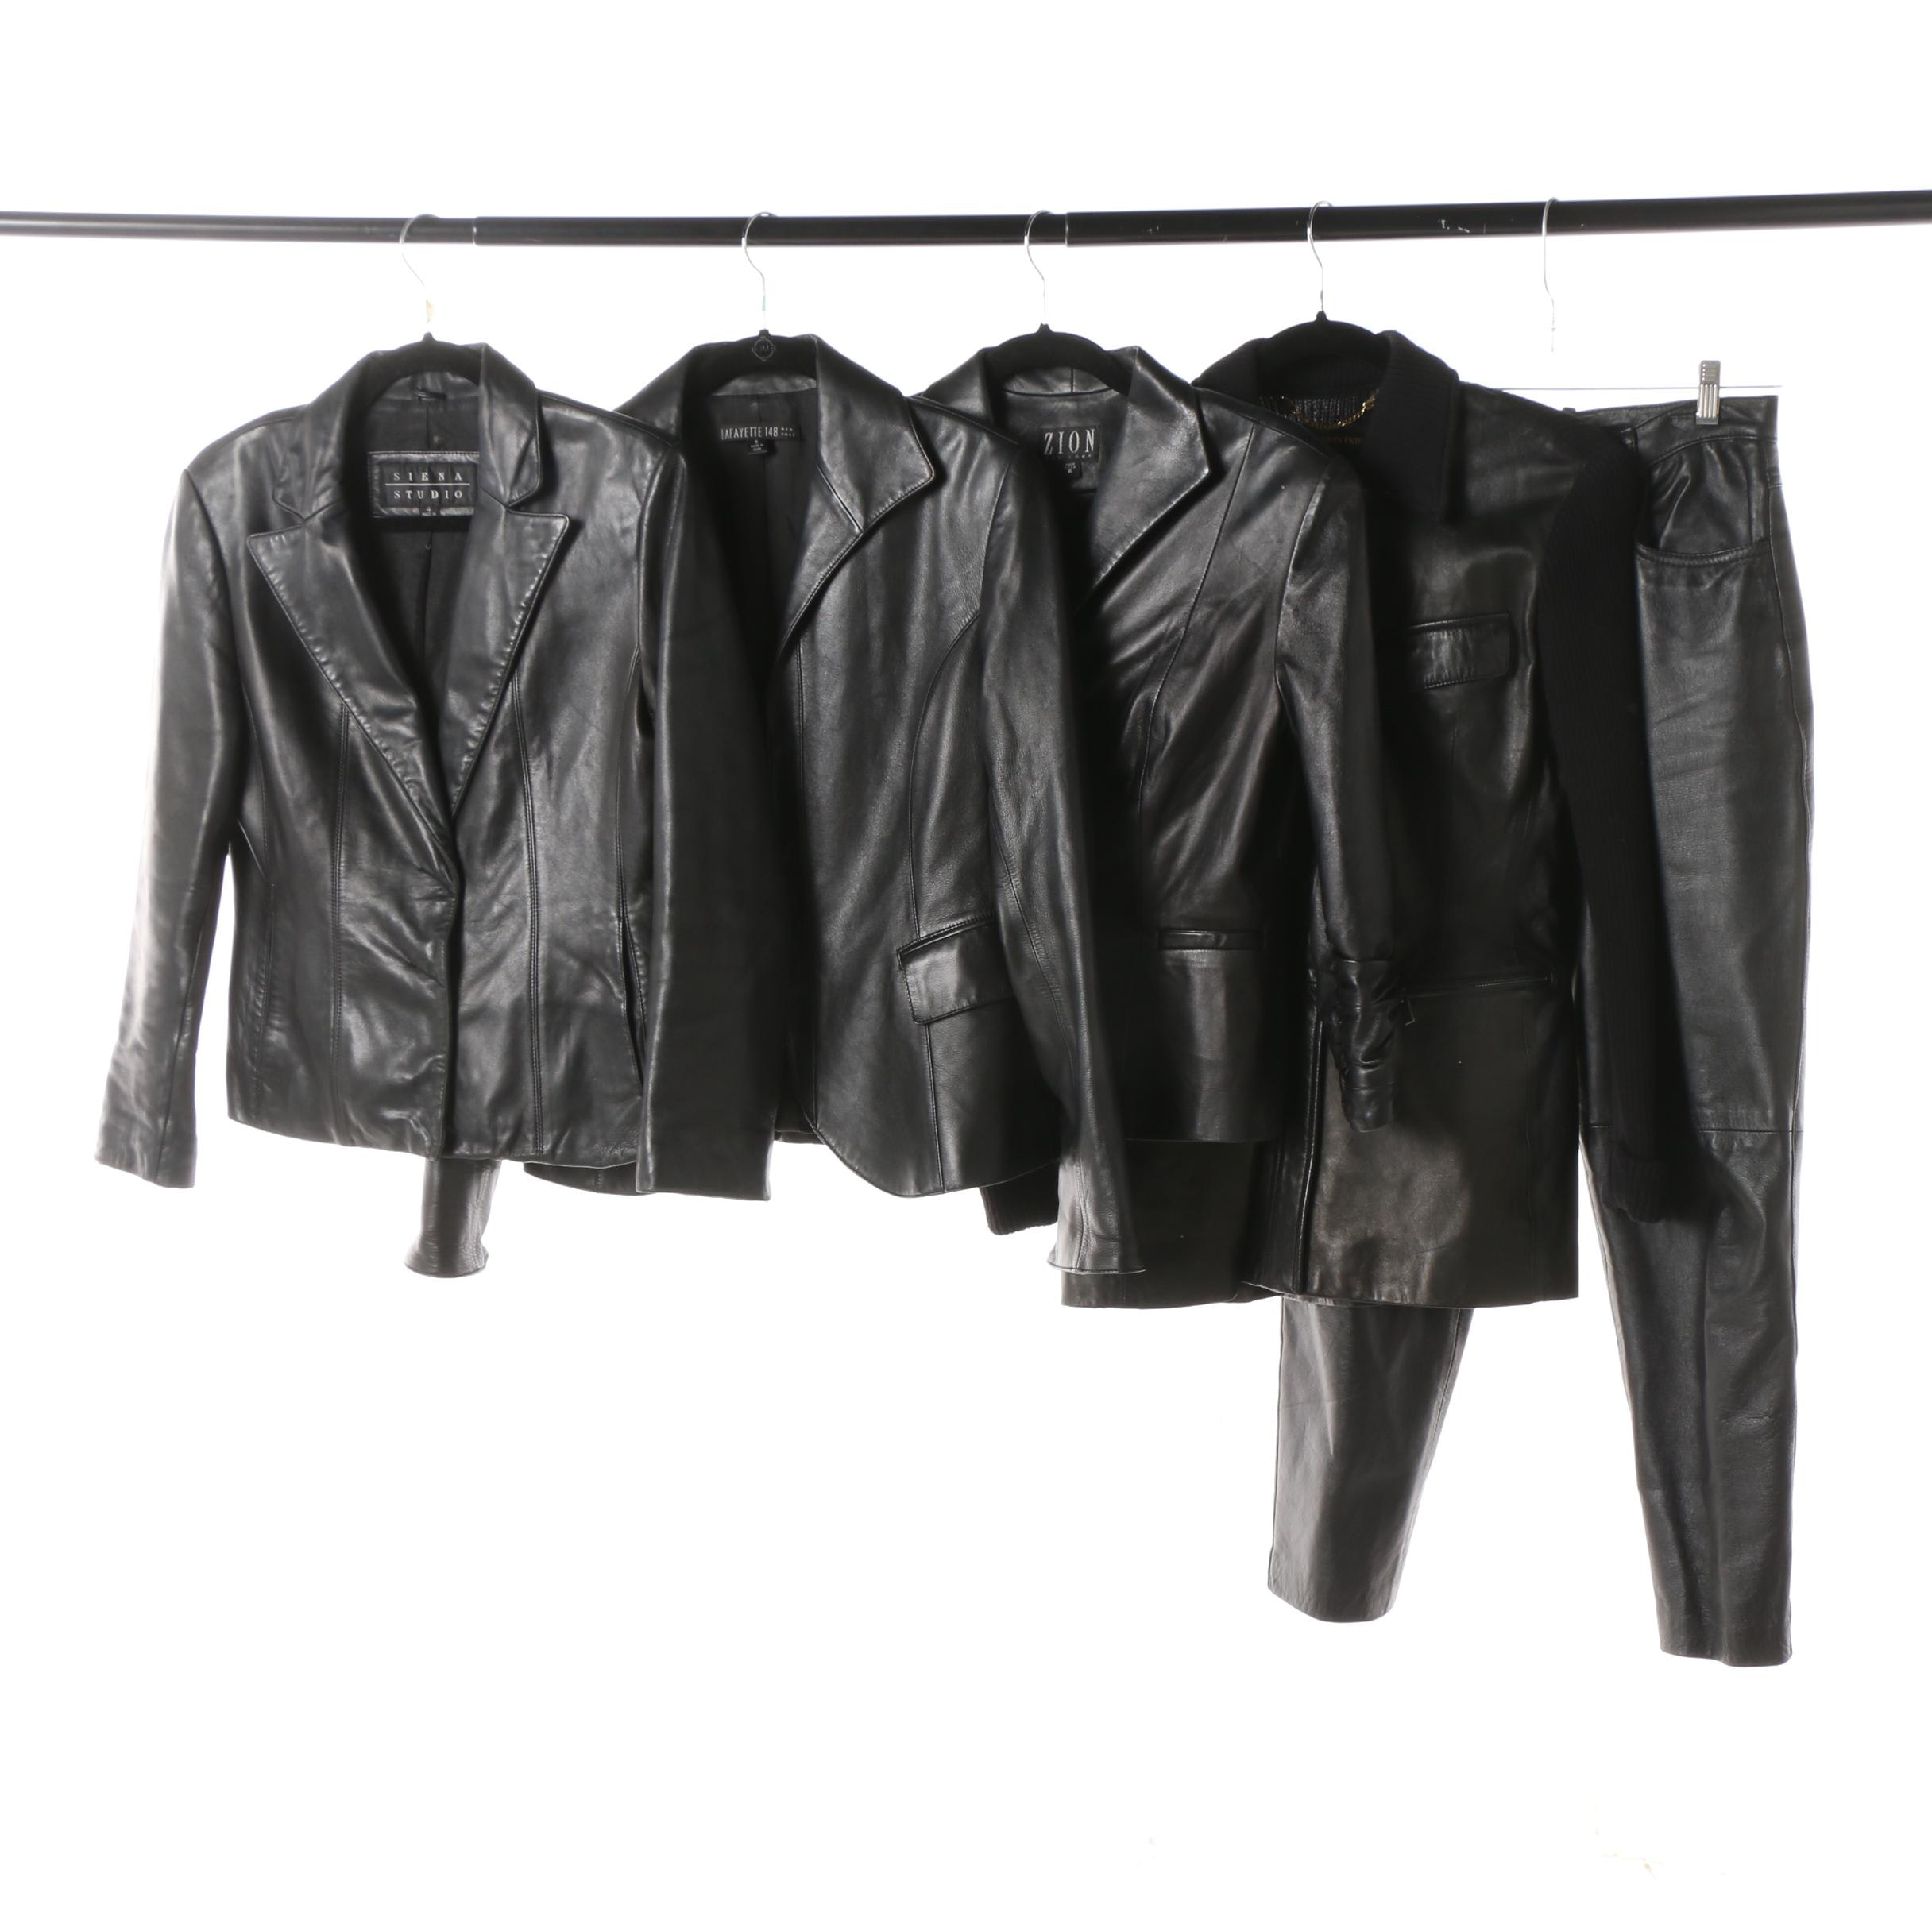 Women's Black Leather Jackets and Pants Including Lafayette 148 New York